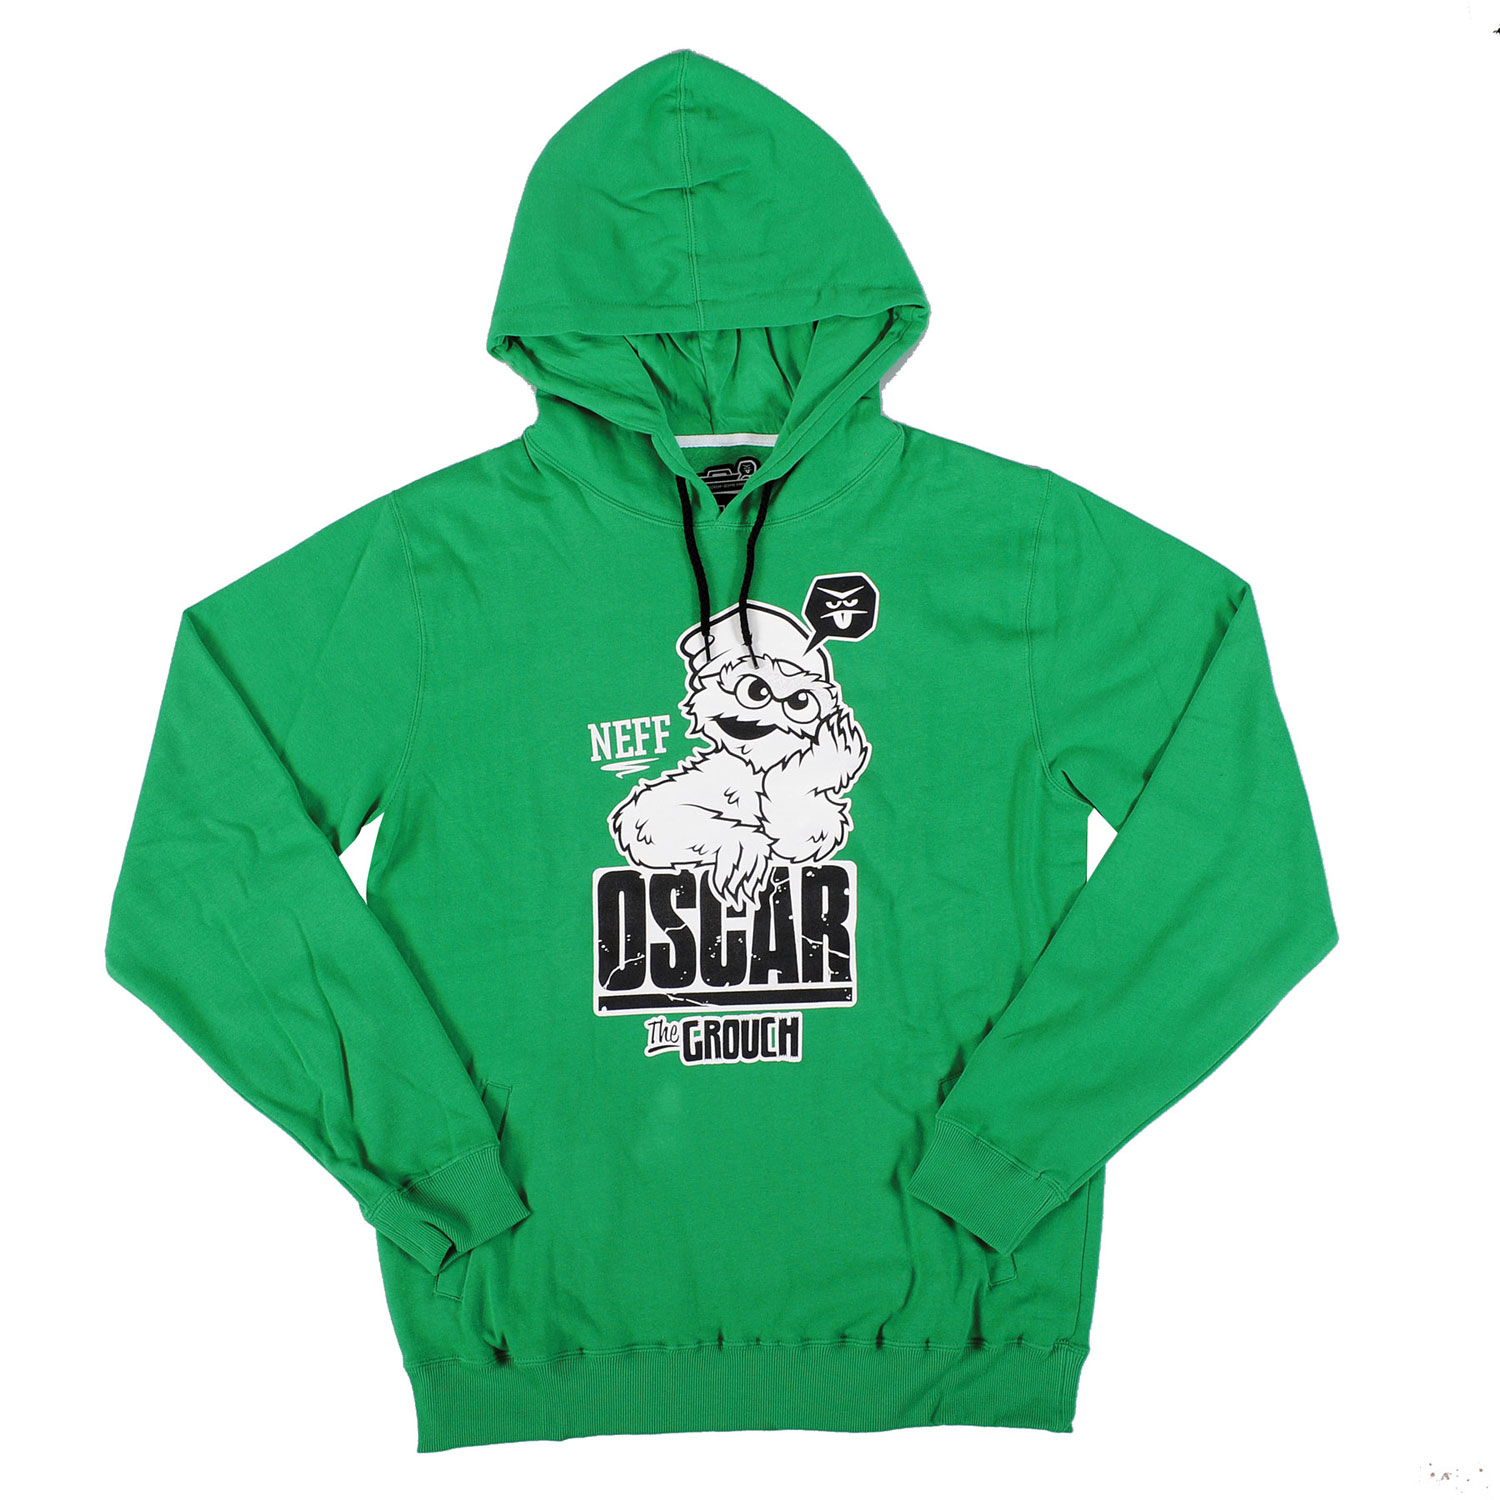 Skateboard Key Features of the Neff Grouch Hood Hoodie: 80% Cotton, 20% Polyester - $55.00